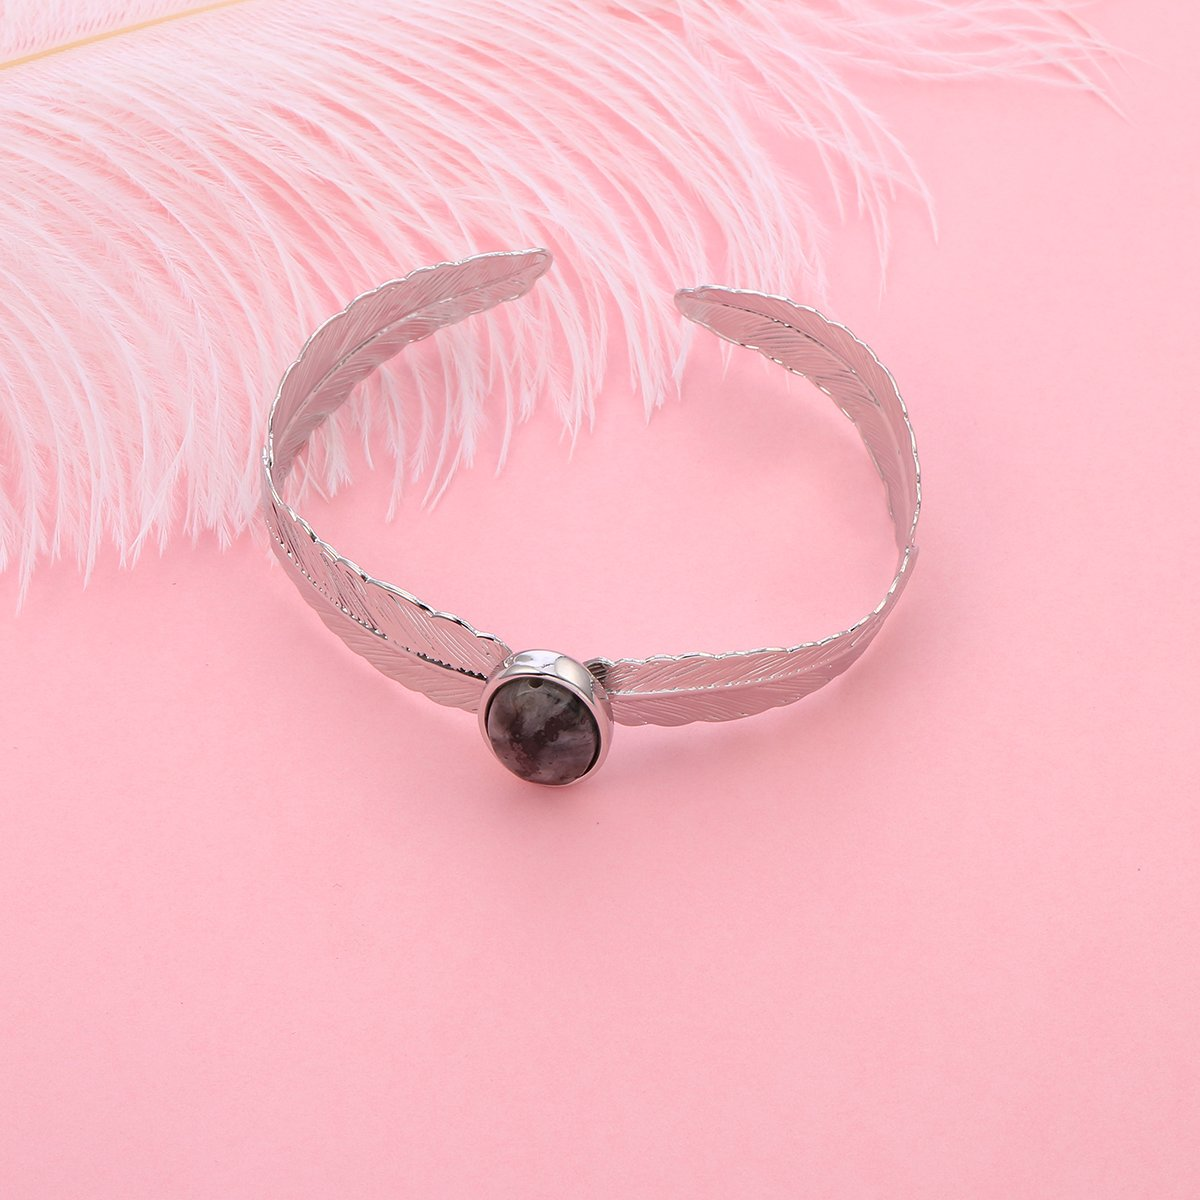 Ouran Bangle Bracelet for Women,Black Stone Cuff Bracelet Friendship Bracelet Girls Silver Wrap Bracelet